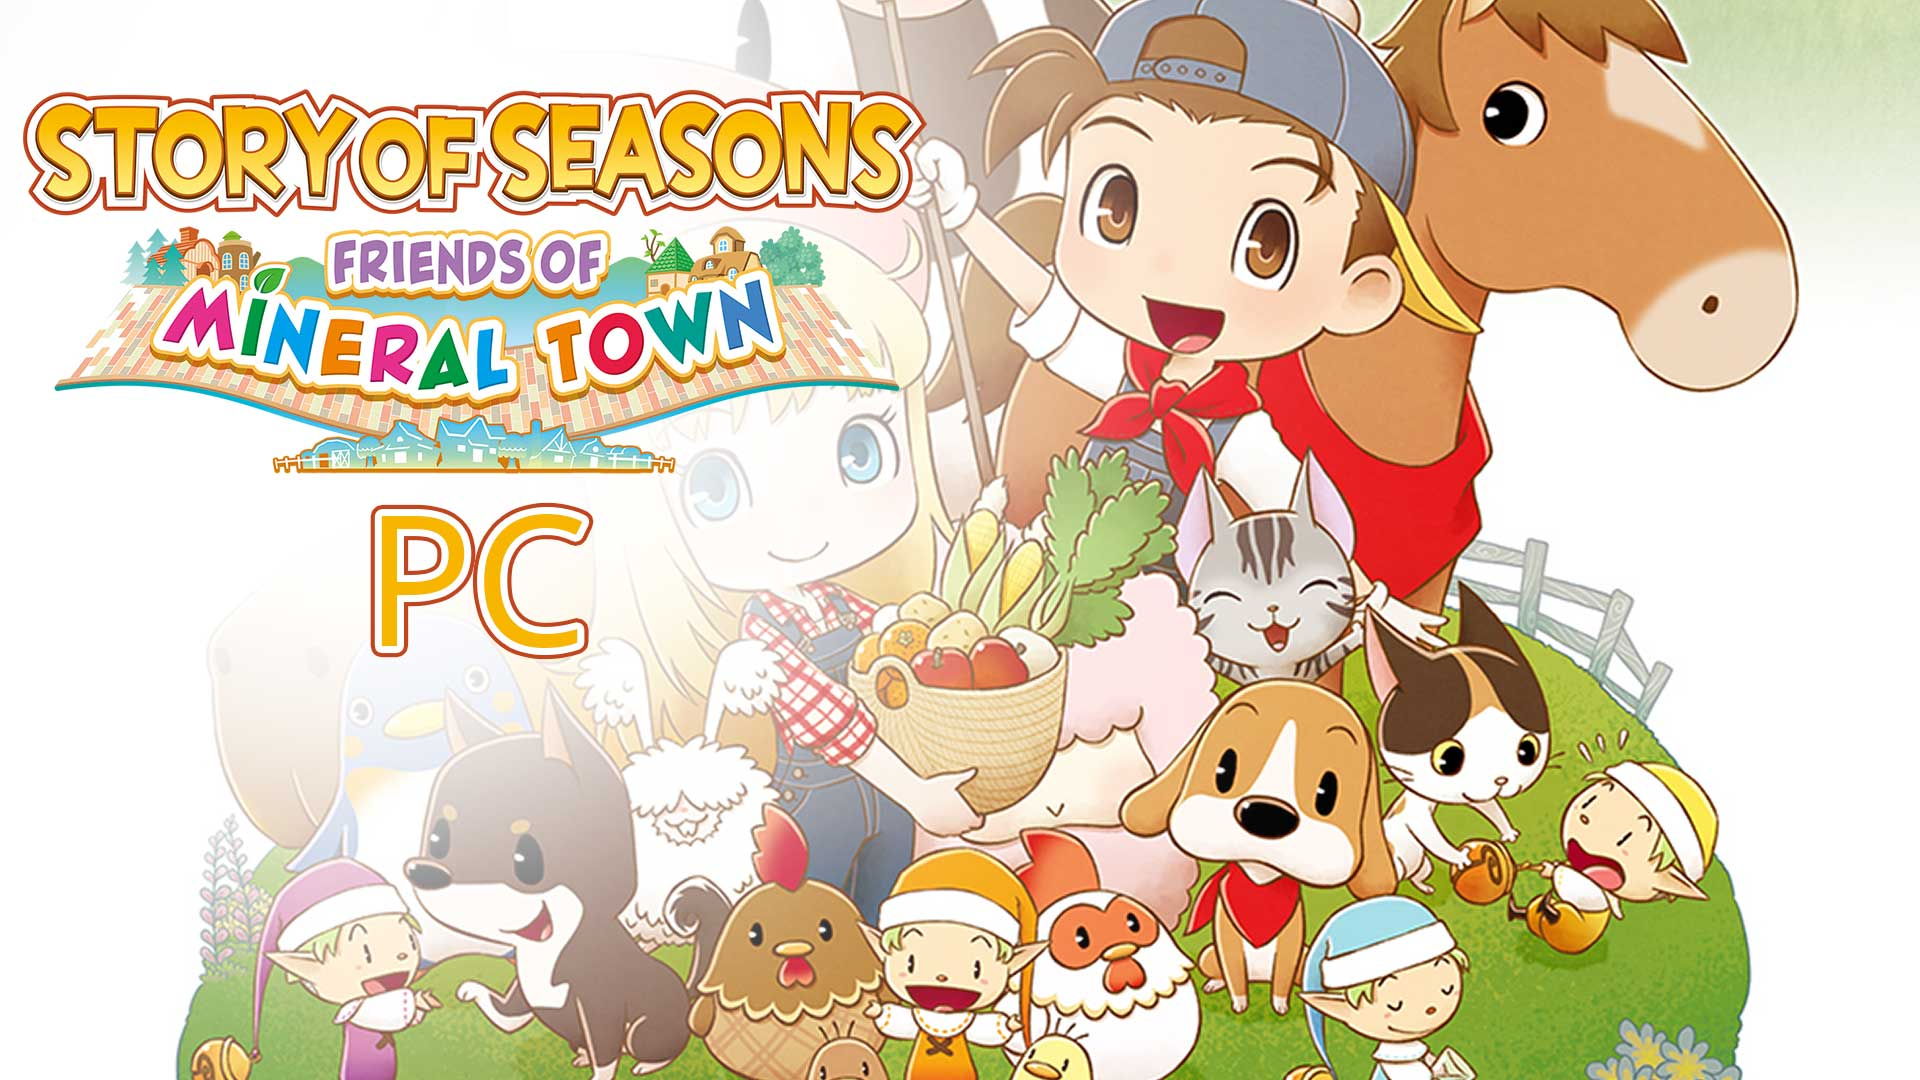 story of seasons mineraltown pc